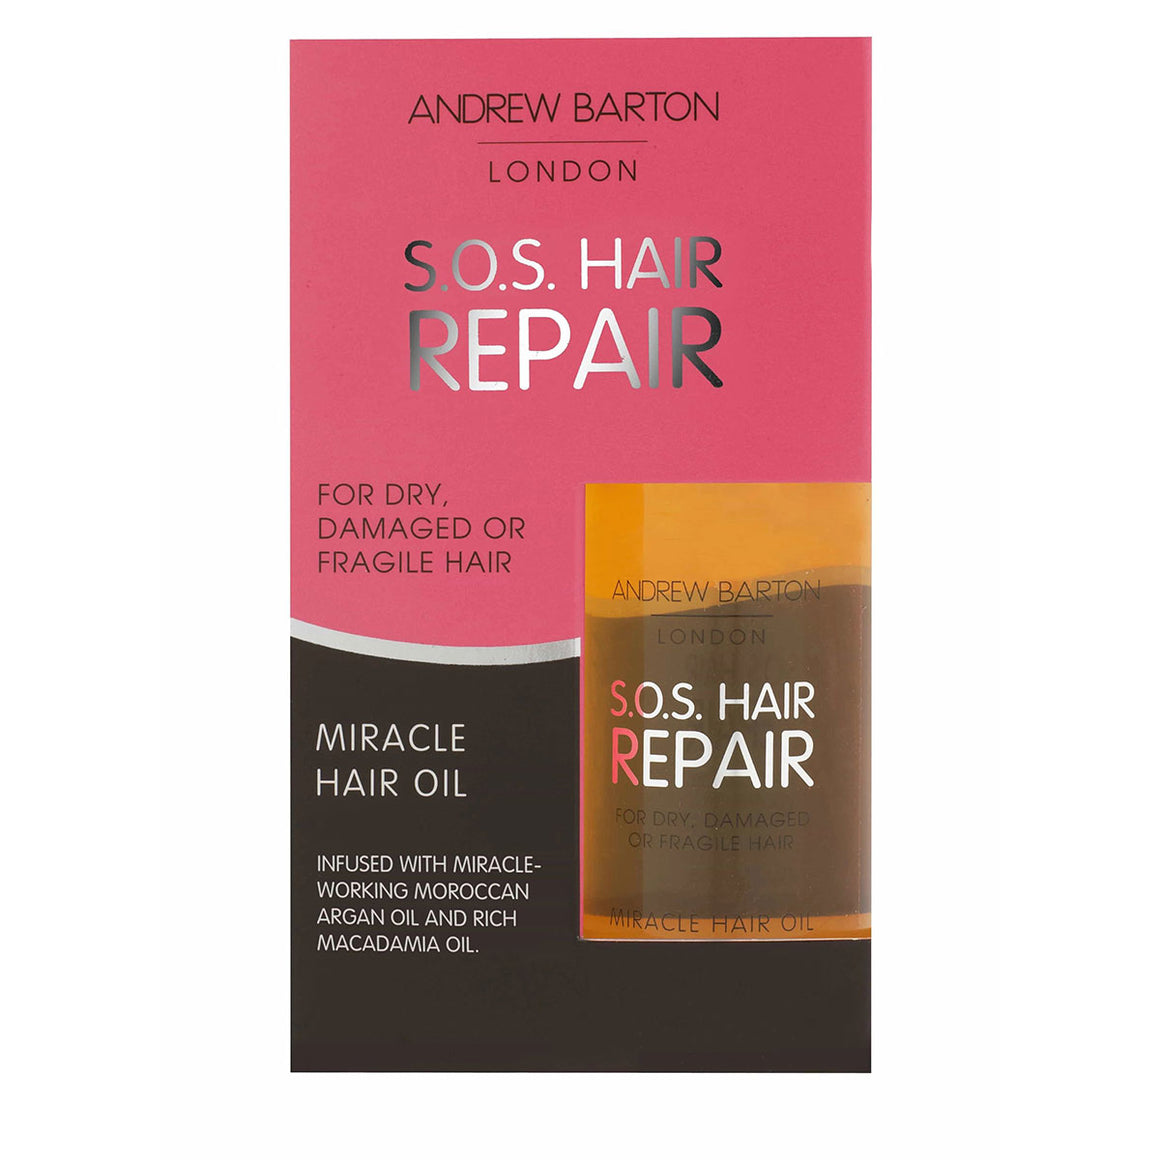 Andrew Barton S.O.S Hair Repair Miracle Hair Oil at BD Budget Beauty (BBB)